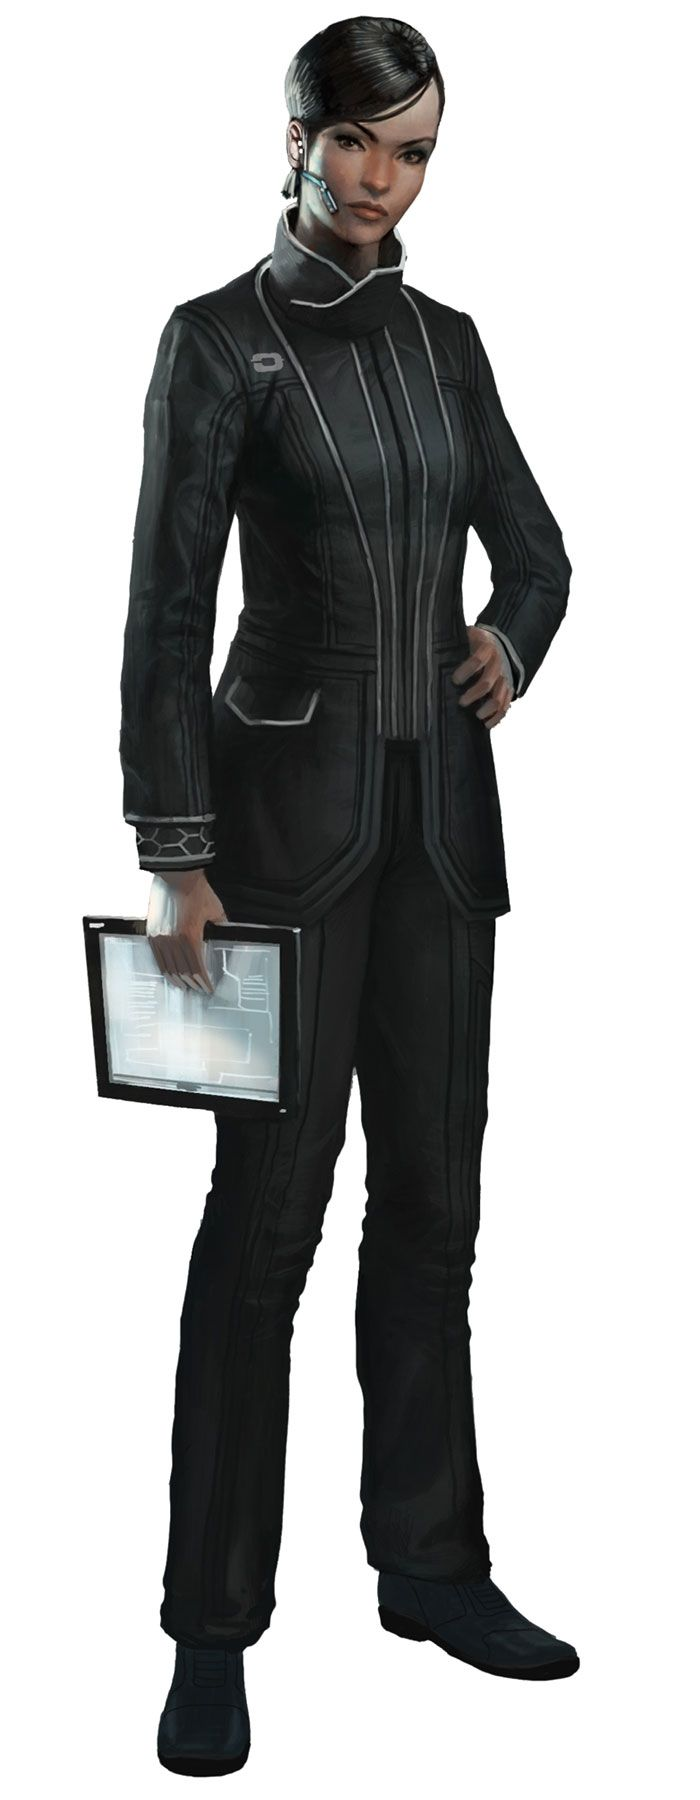 Corporation Uniform from The Secret World